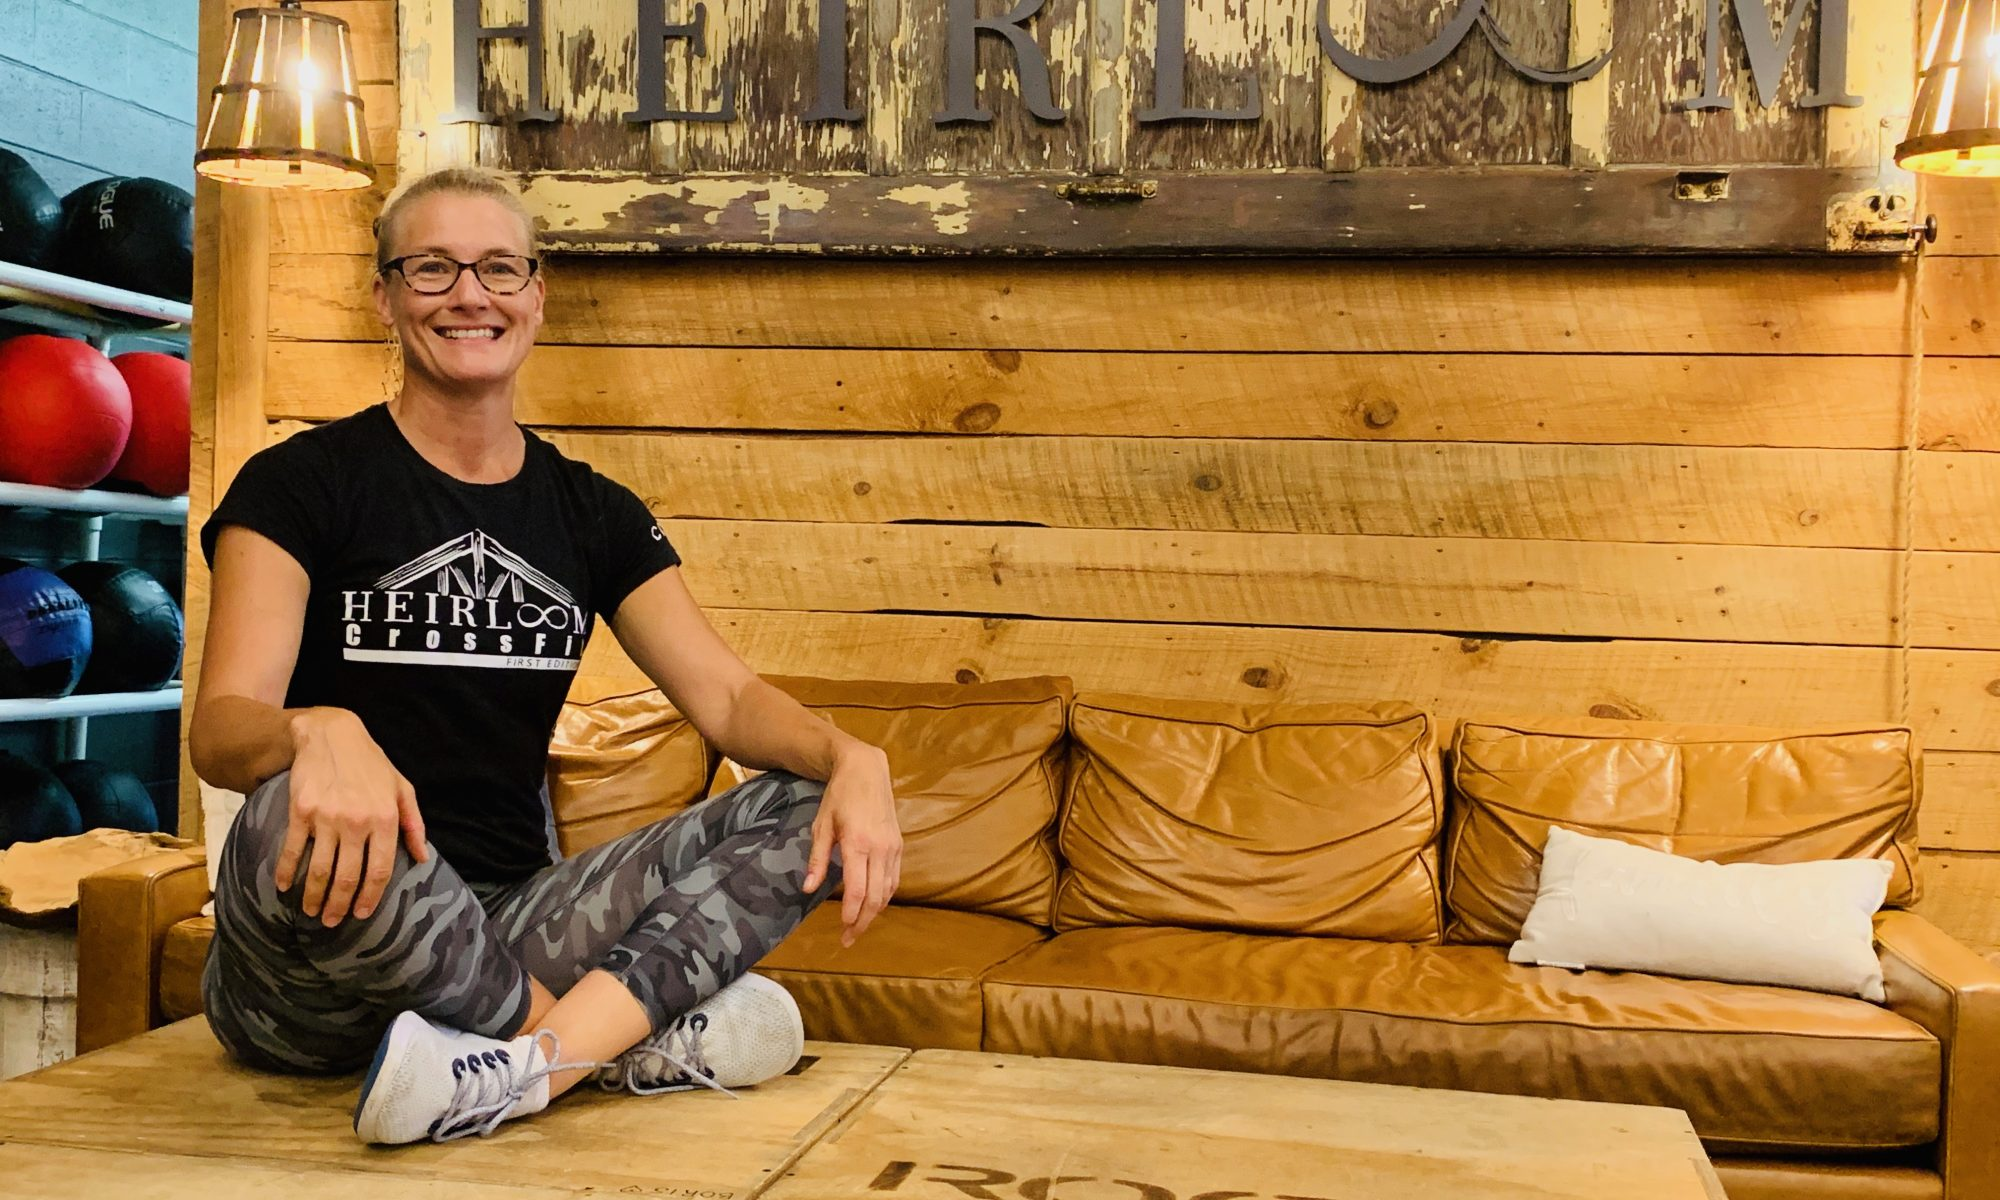 Heirloom Athletics Owner Karah Bunde